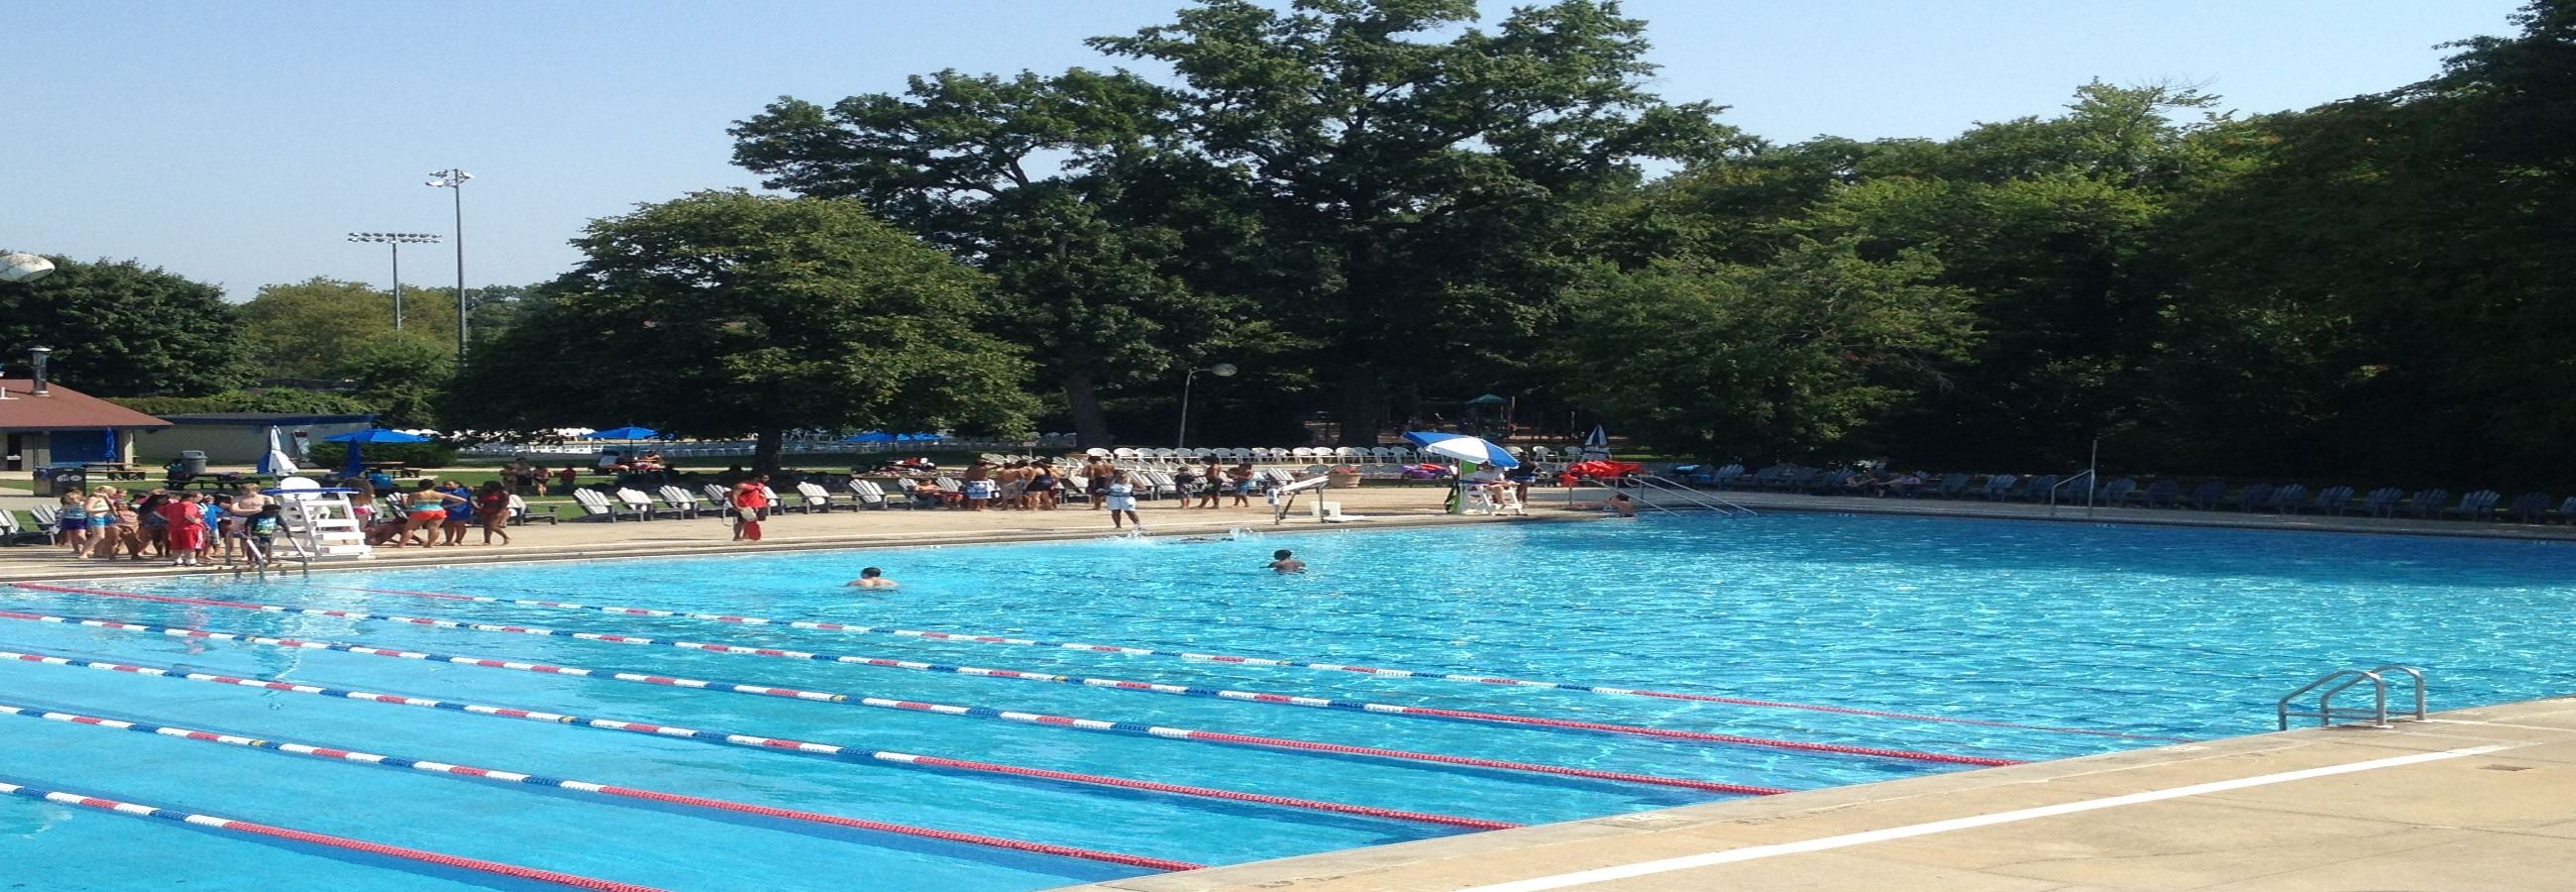 The Peter S. Connor Memorial Swimming Pool is a municipal facility administered through the South Orange Department of Recreation and Cultural Affairs.